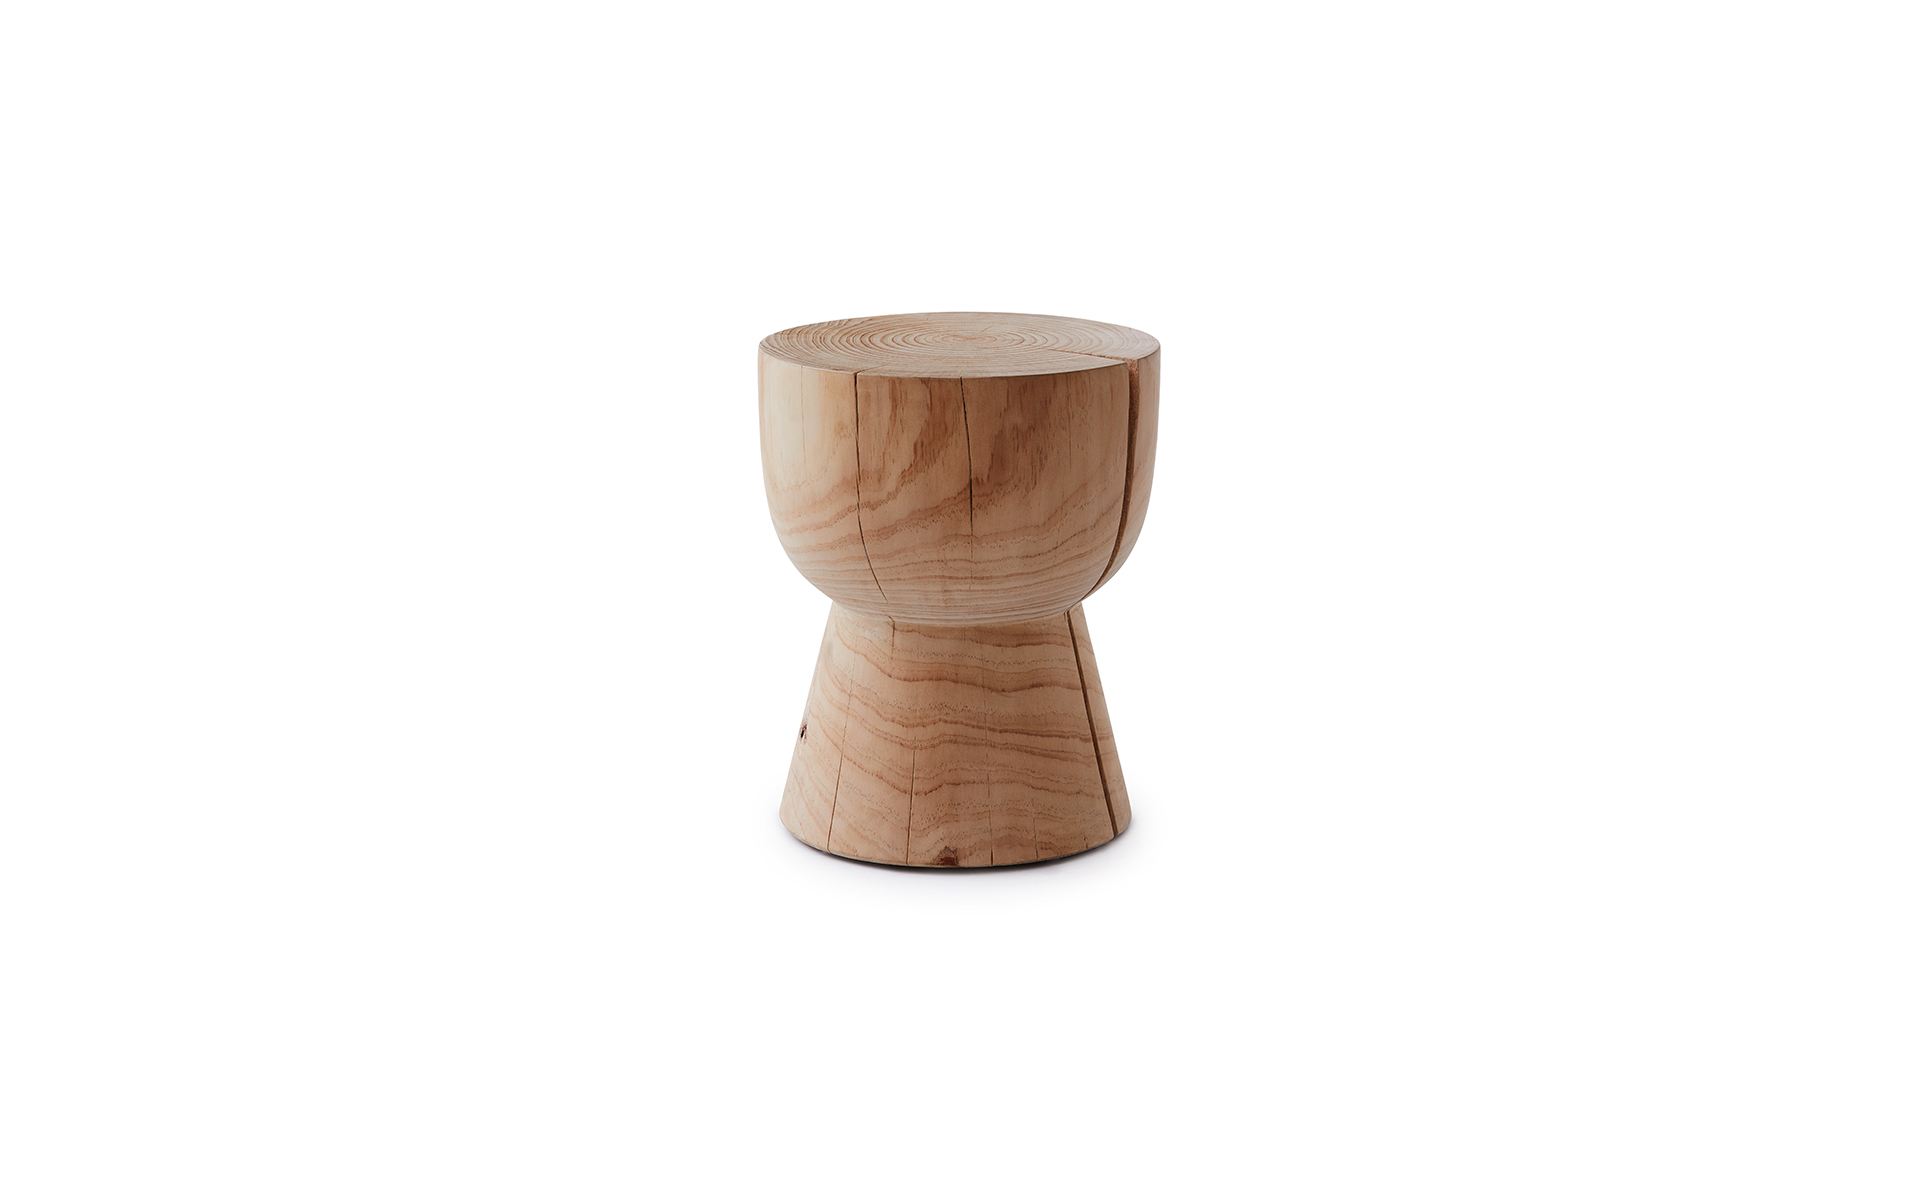 Stupendous Eggcup Mark Tuckey Andrewgaddart Wooden Chair Designs For Living Room Andrewgaddartcom